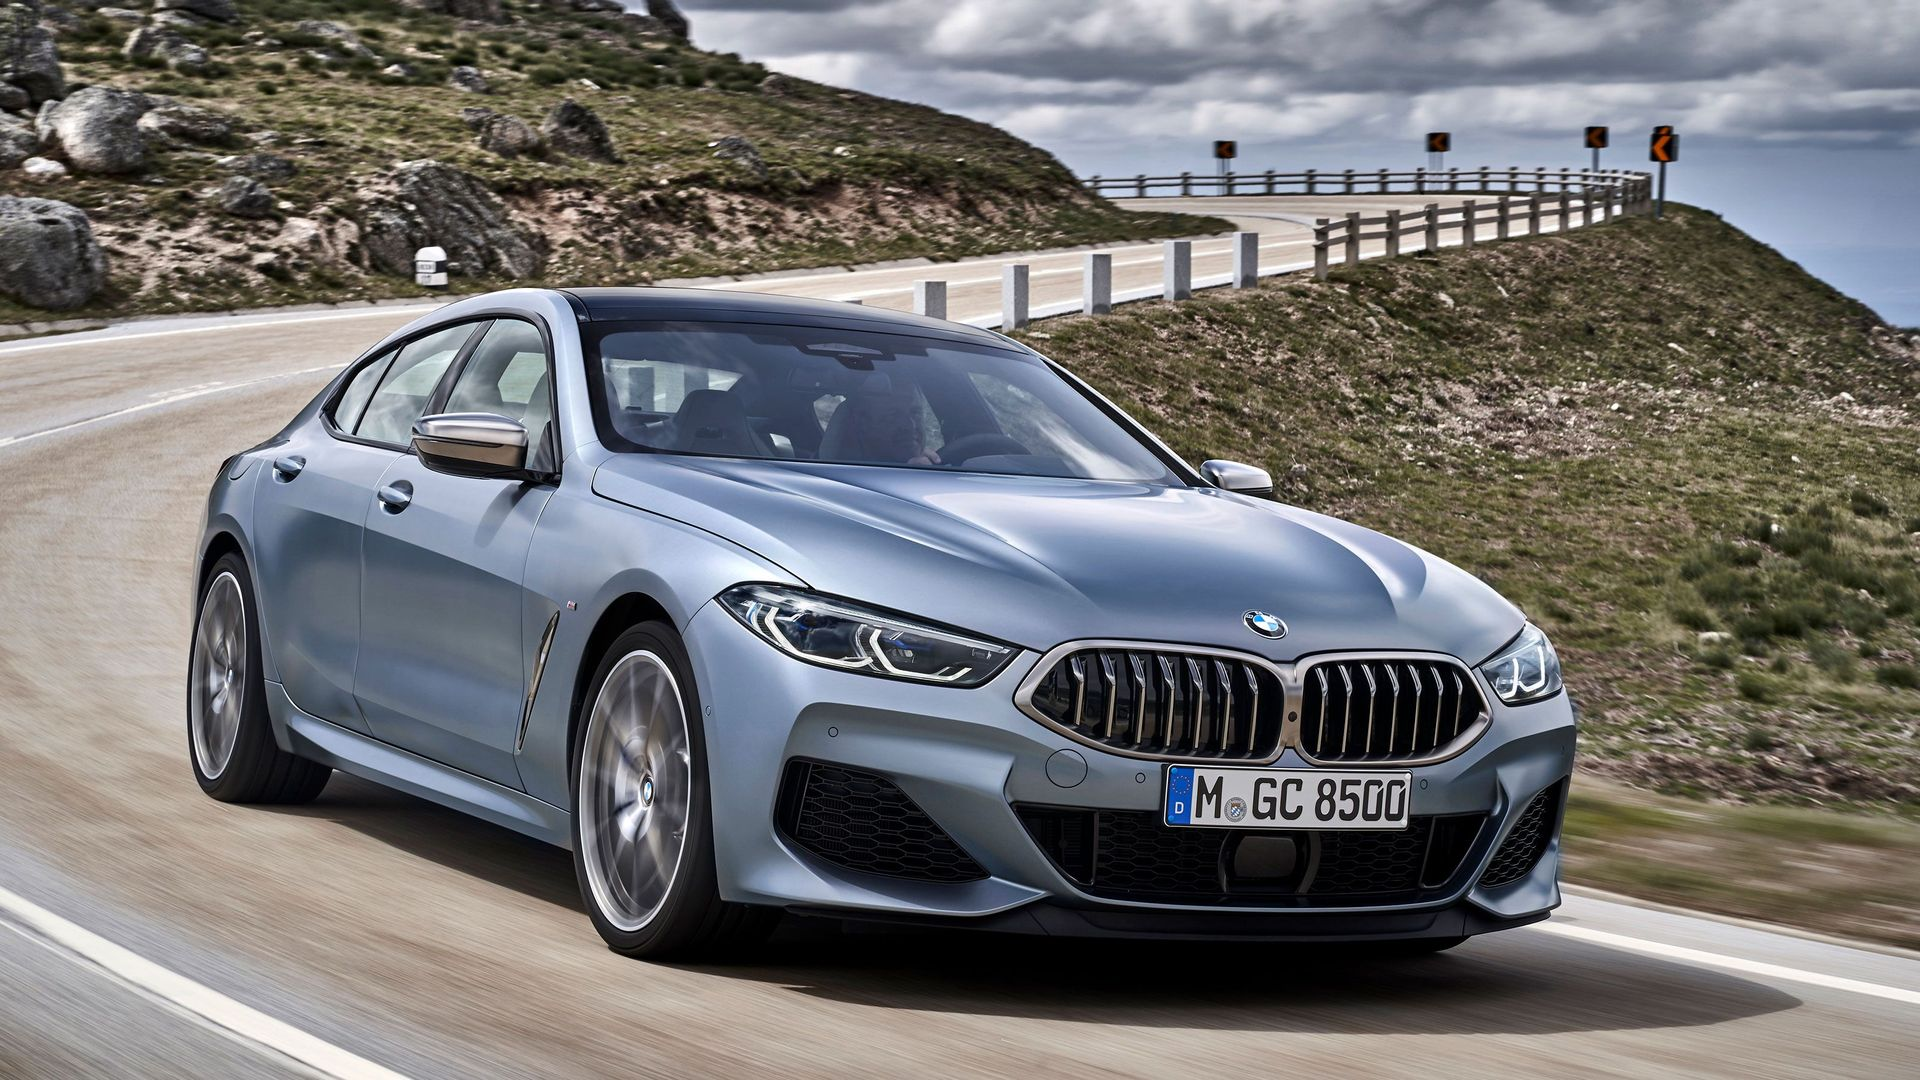 BMW 8 Series Gran Coupe 840d image